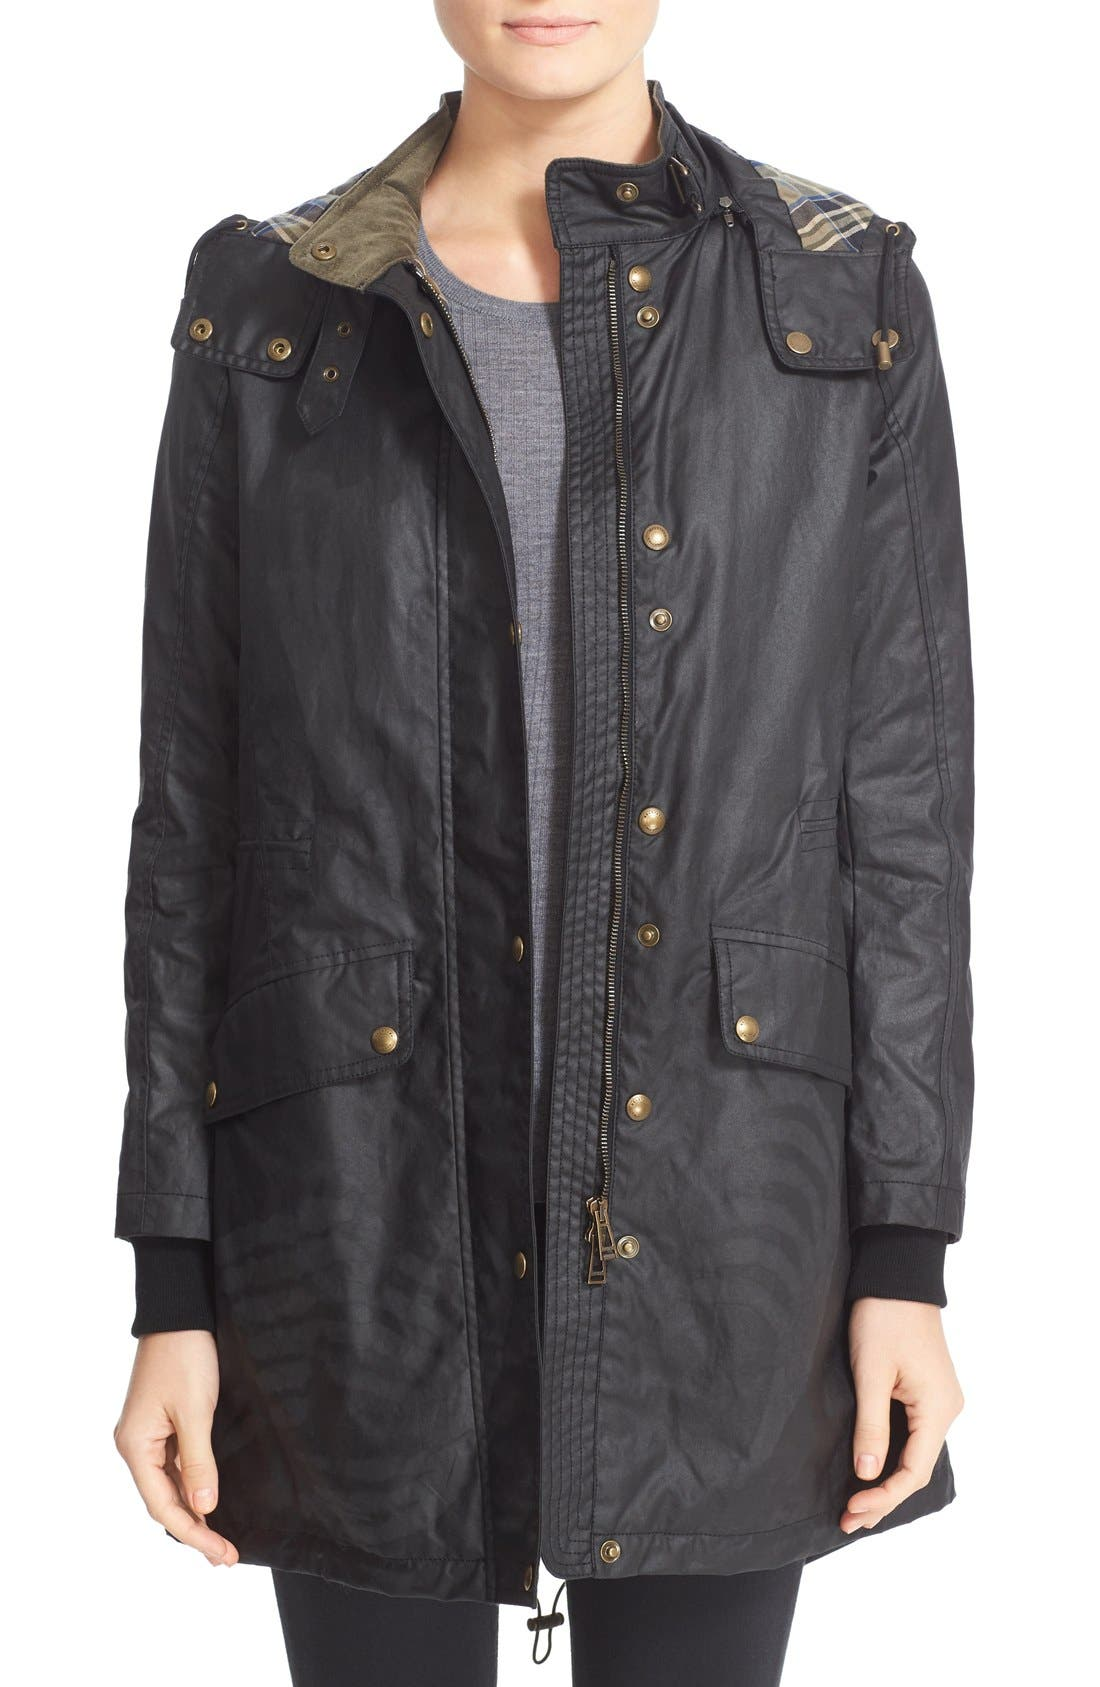 Wembury Waxed Cotton Jacket,                             Main thumbnail 1, color,                             001